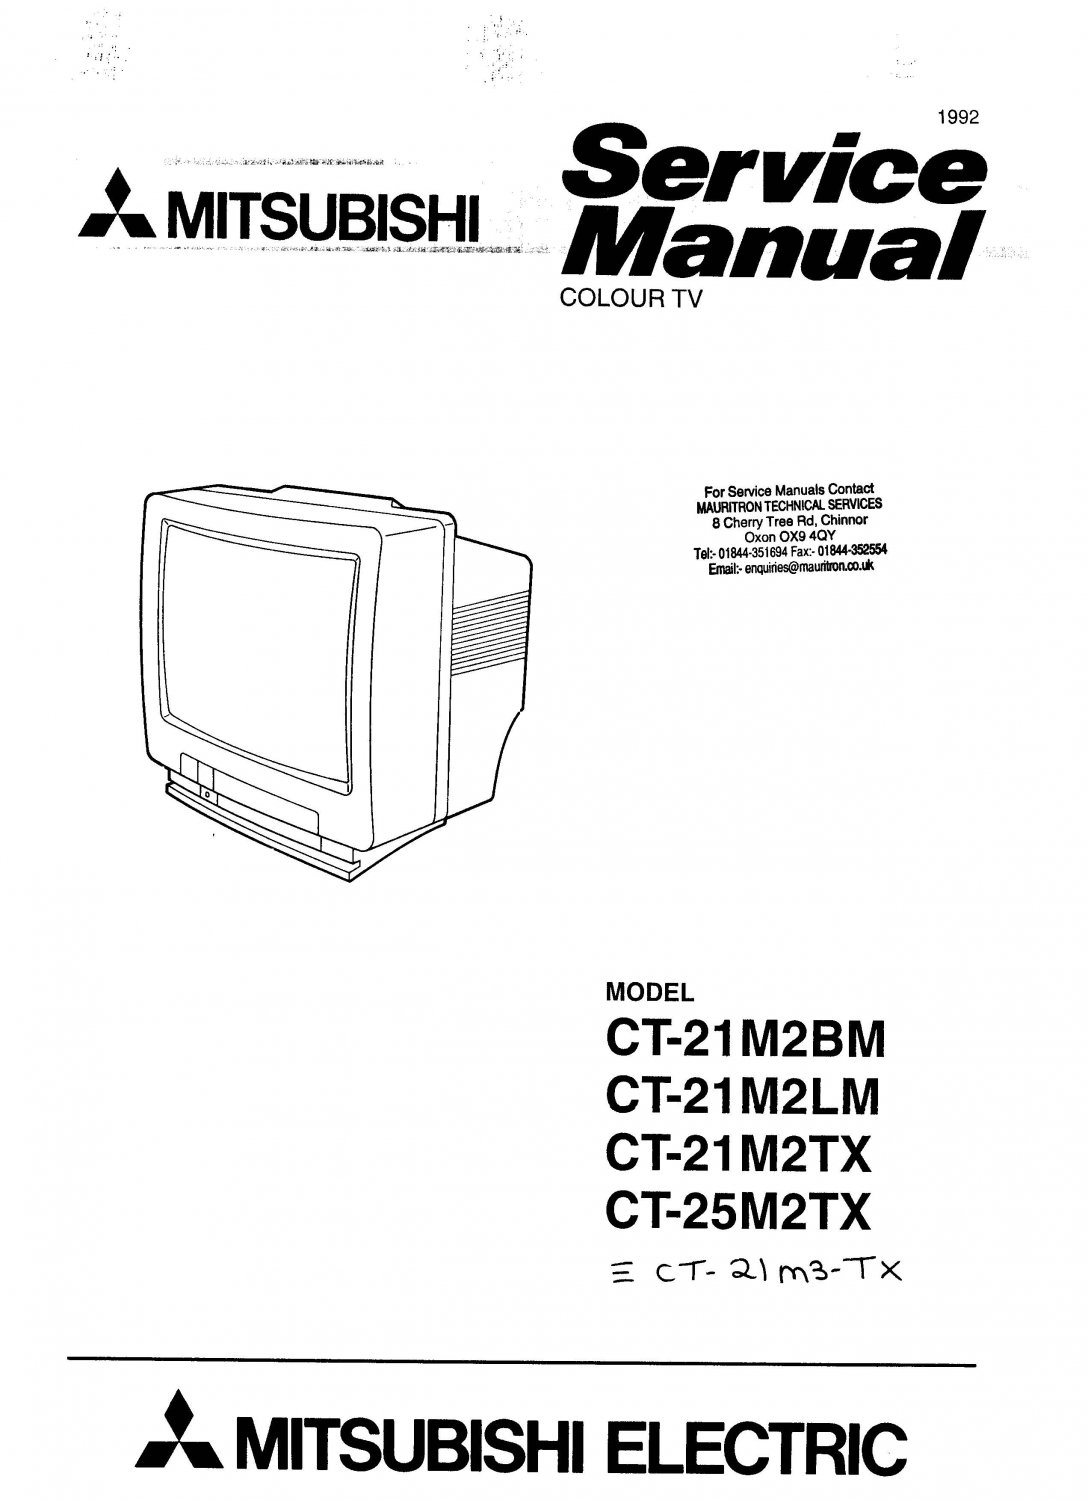 Mitsubishi CT21M2TX Television Service Manual PDF download.